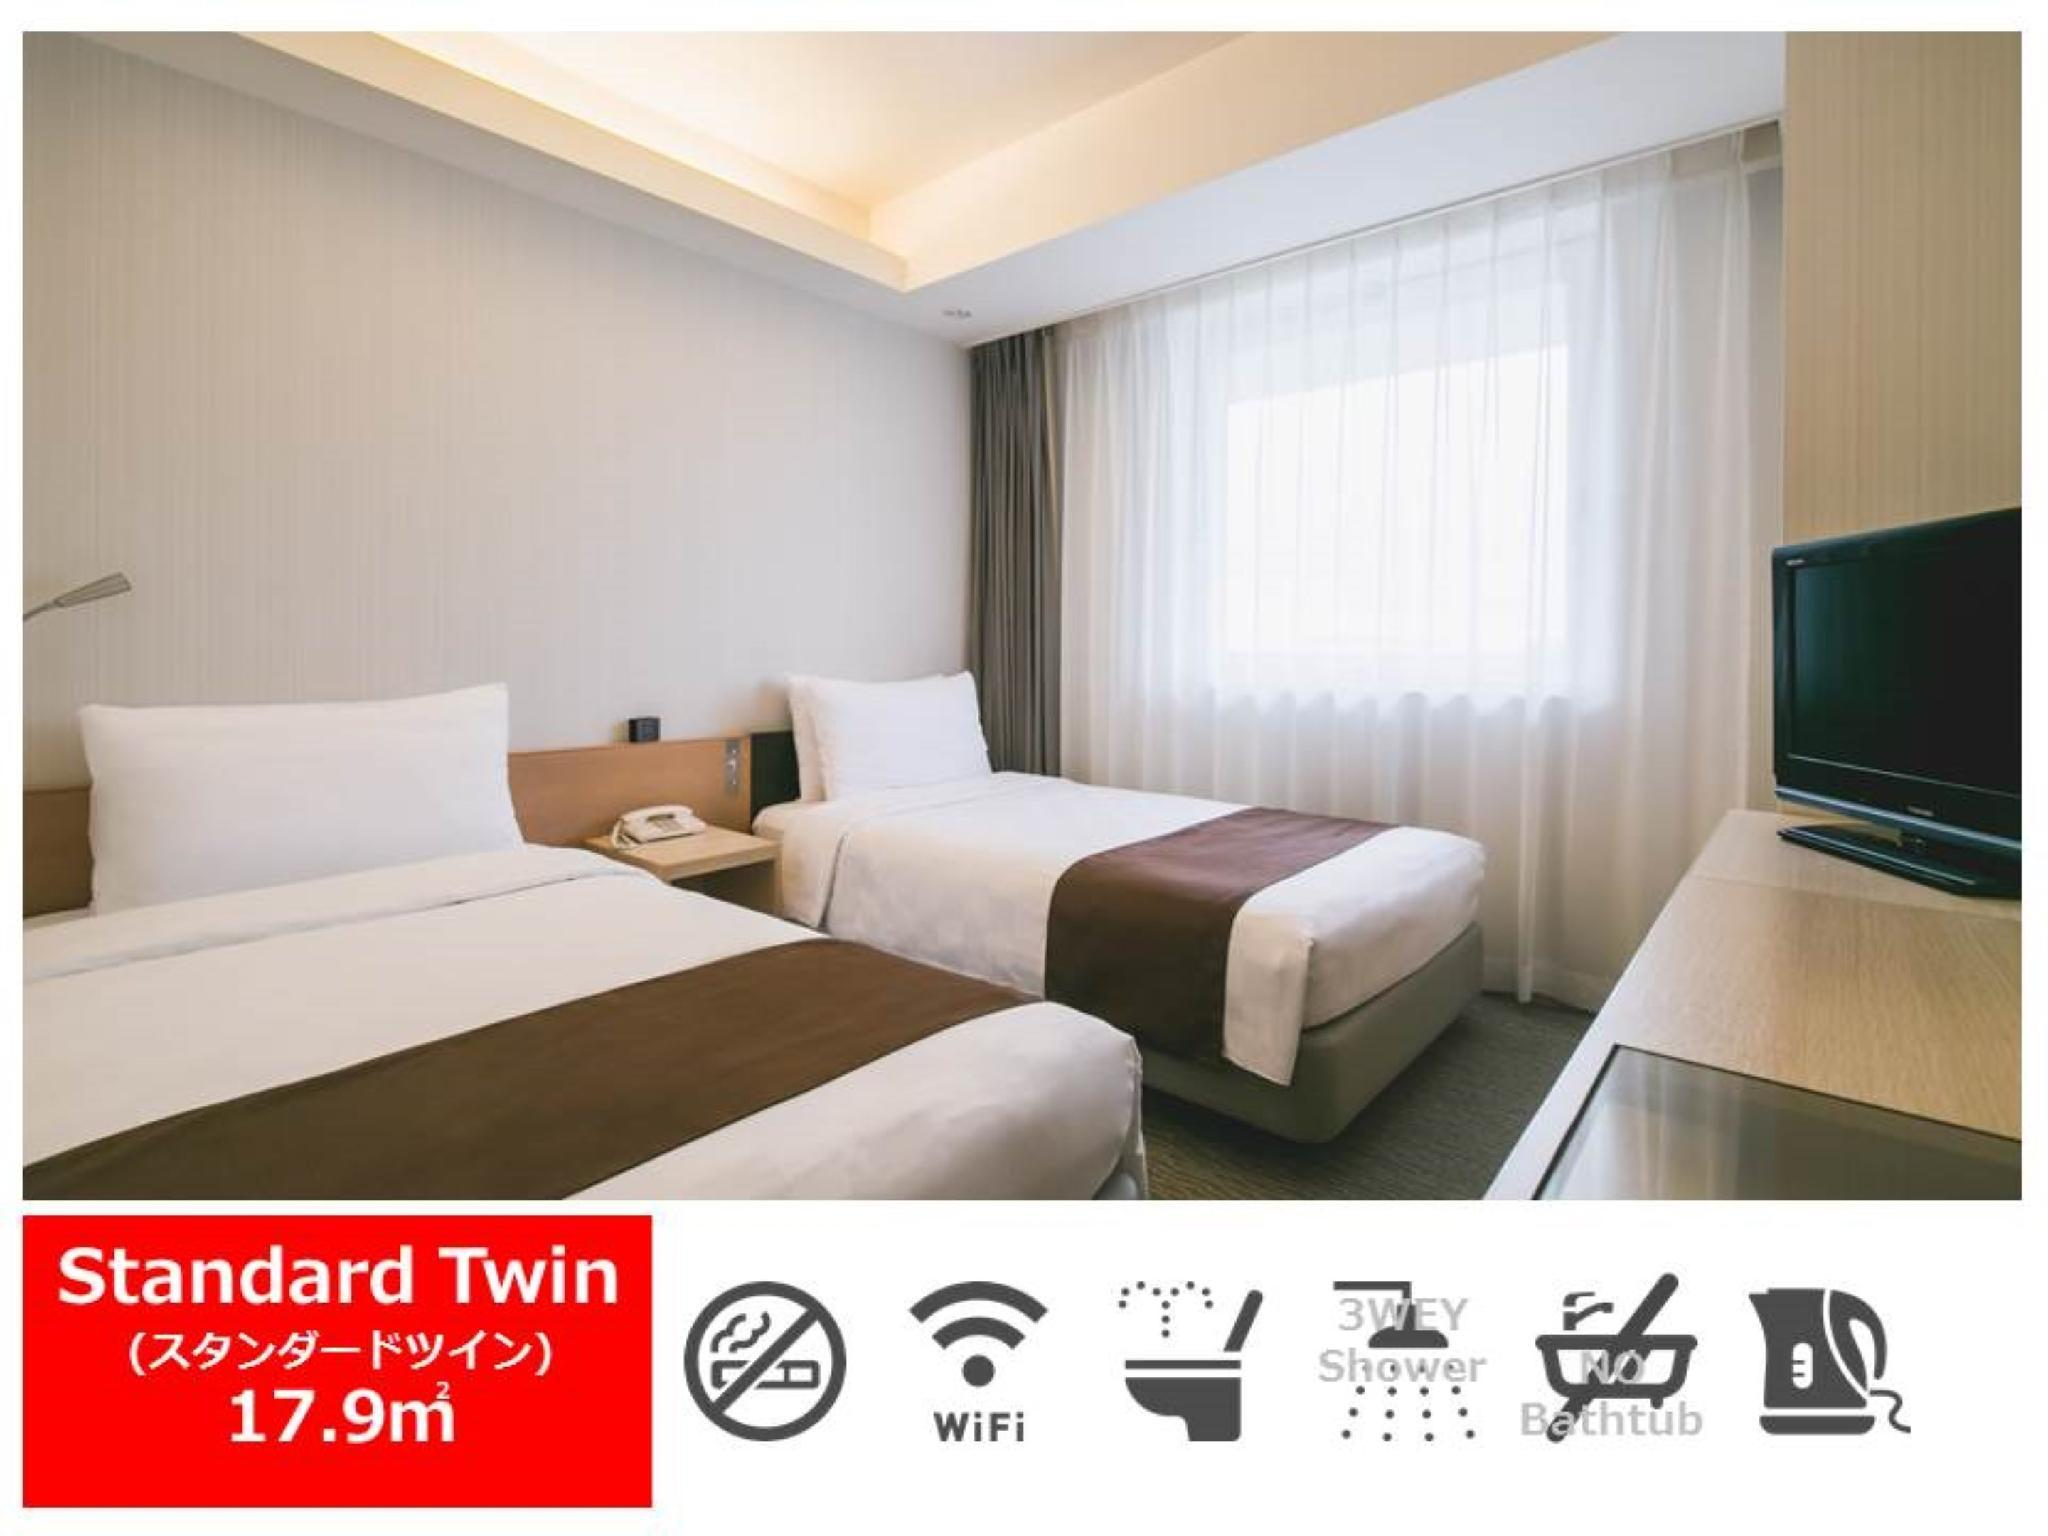 標準雙人雙床房※無浴缸 (Standard Twin Room *No bath in room)